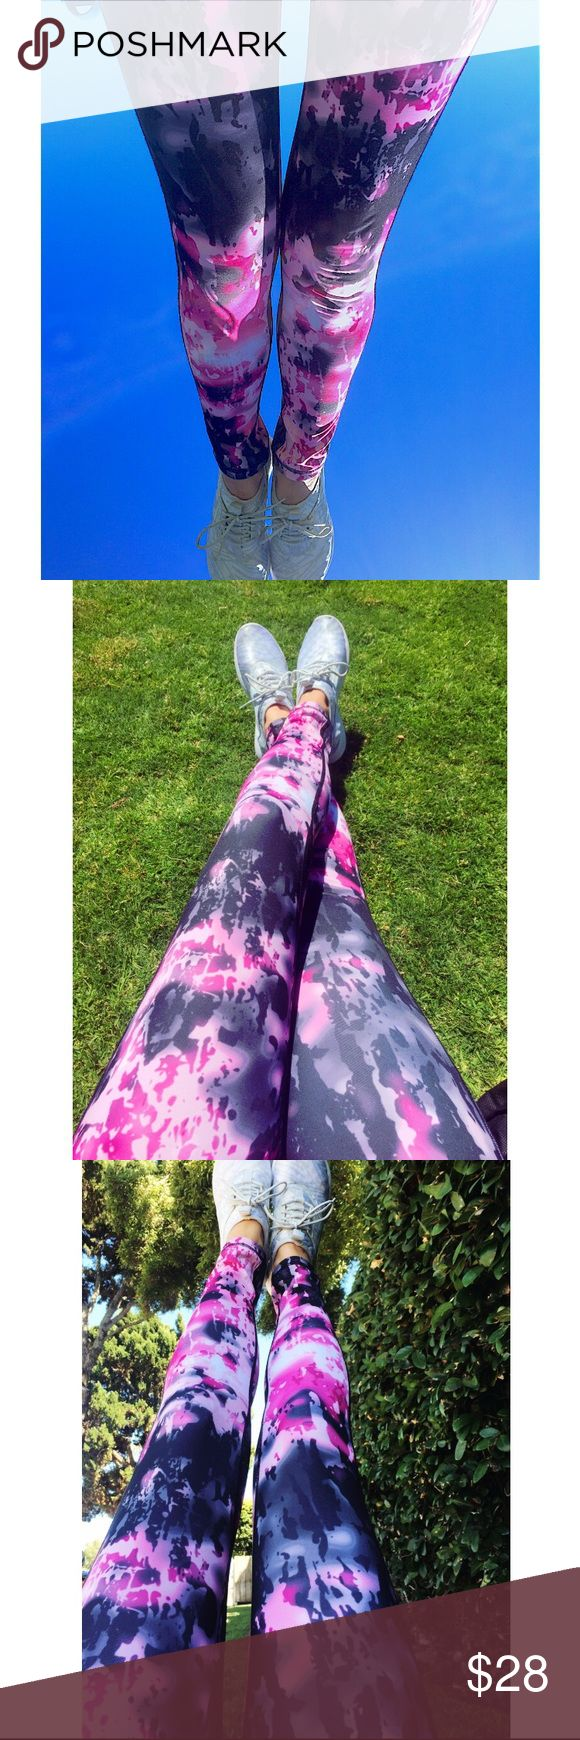 Weekend sale✨Aspana print leggings Elevate your asana with a mindful design inspired by your active lifestyle. Aspana Yoga Lifestyle Leggings. Graffiti print, pink combo, rich black. Size small. They really look like the lululemon leggings on the last photo. {Not lululemon} lululemon athletica Pants Leggings